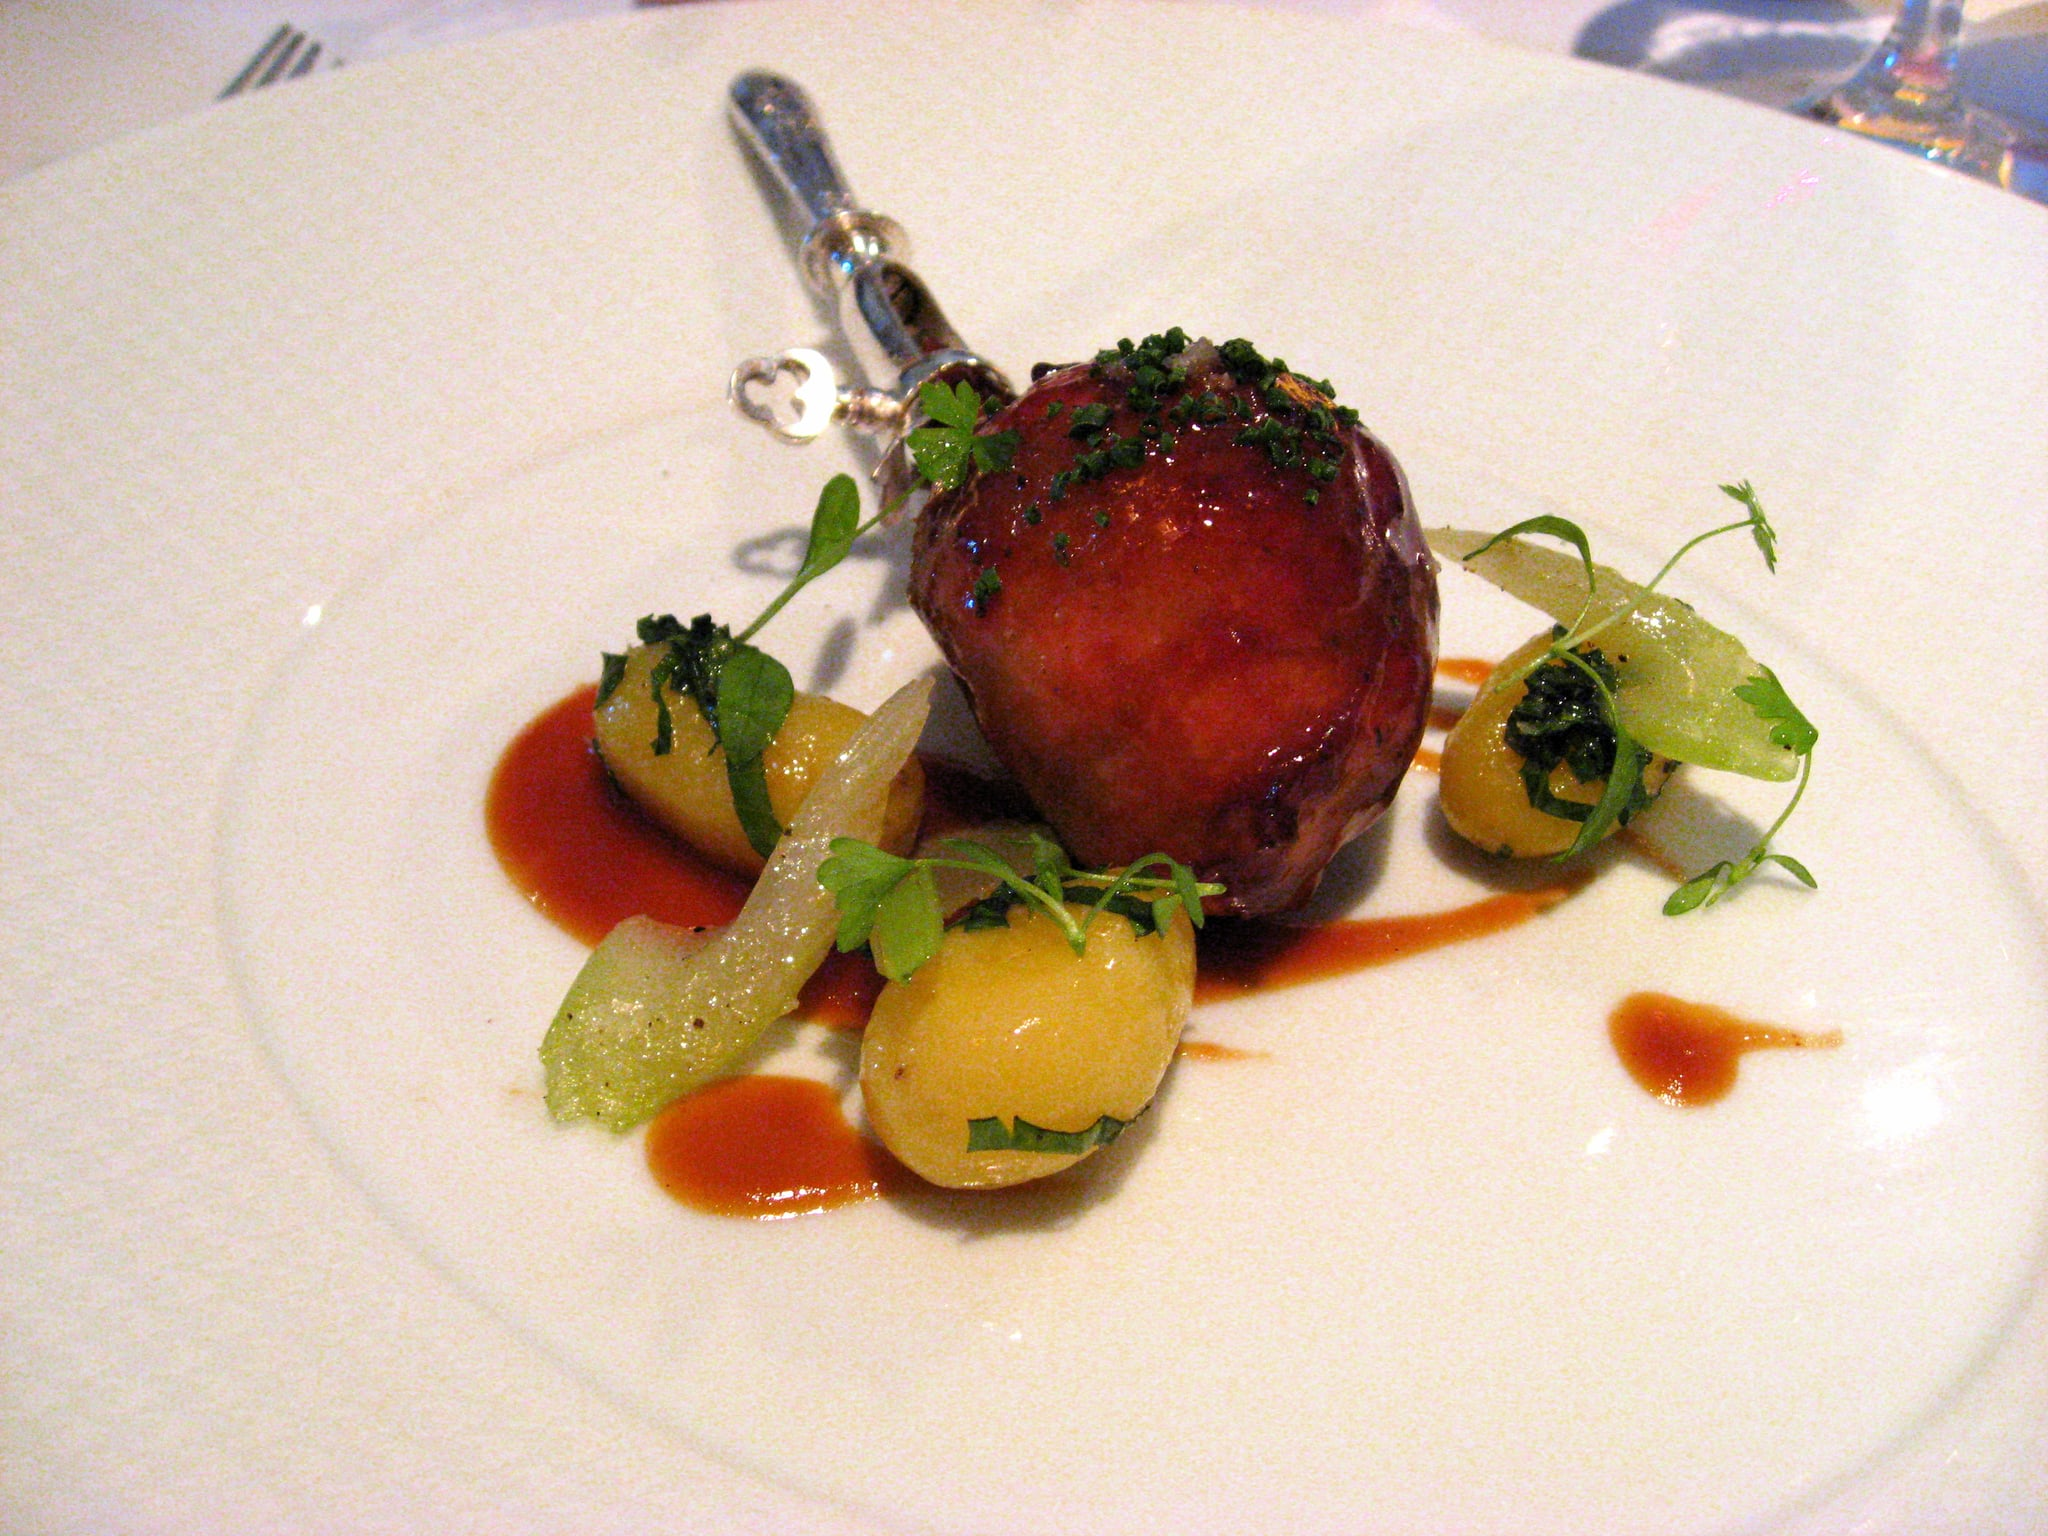 Exercise in Excess: The French Laundry Part 3